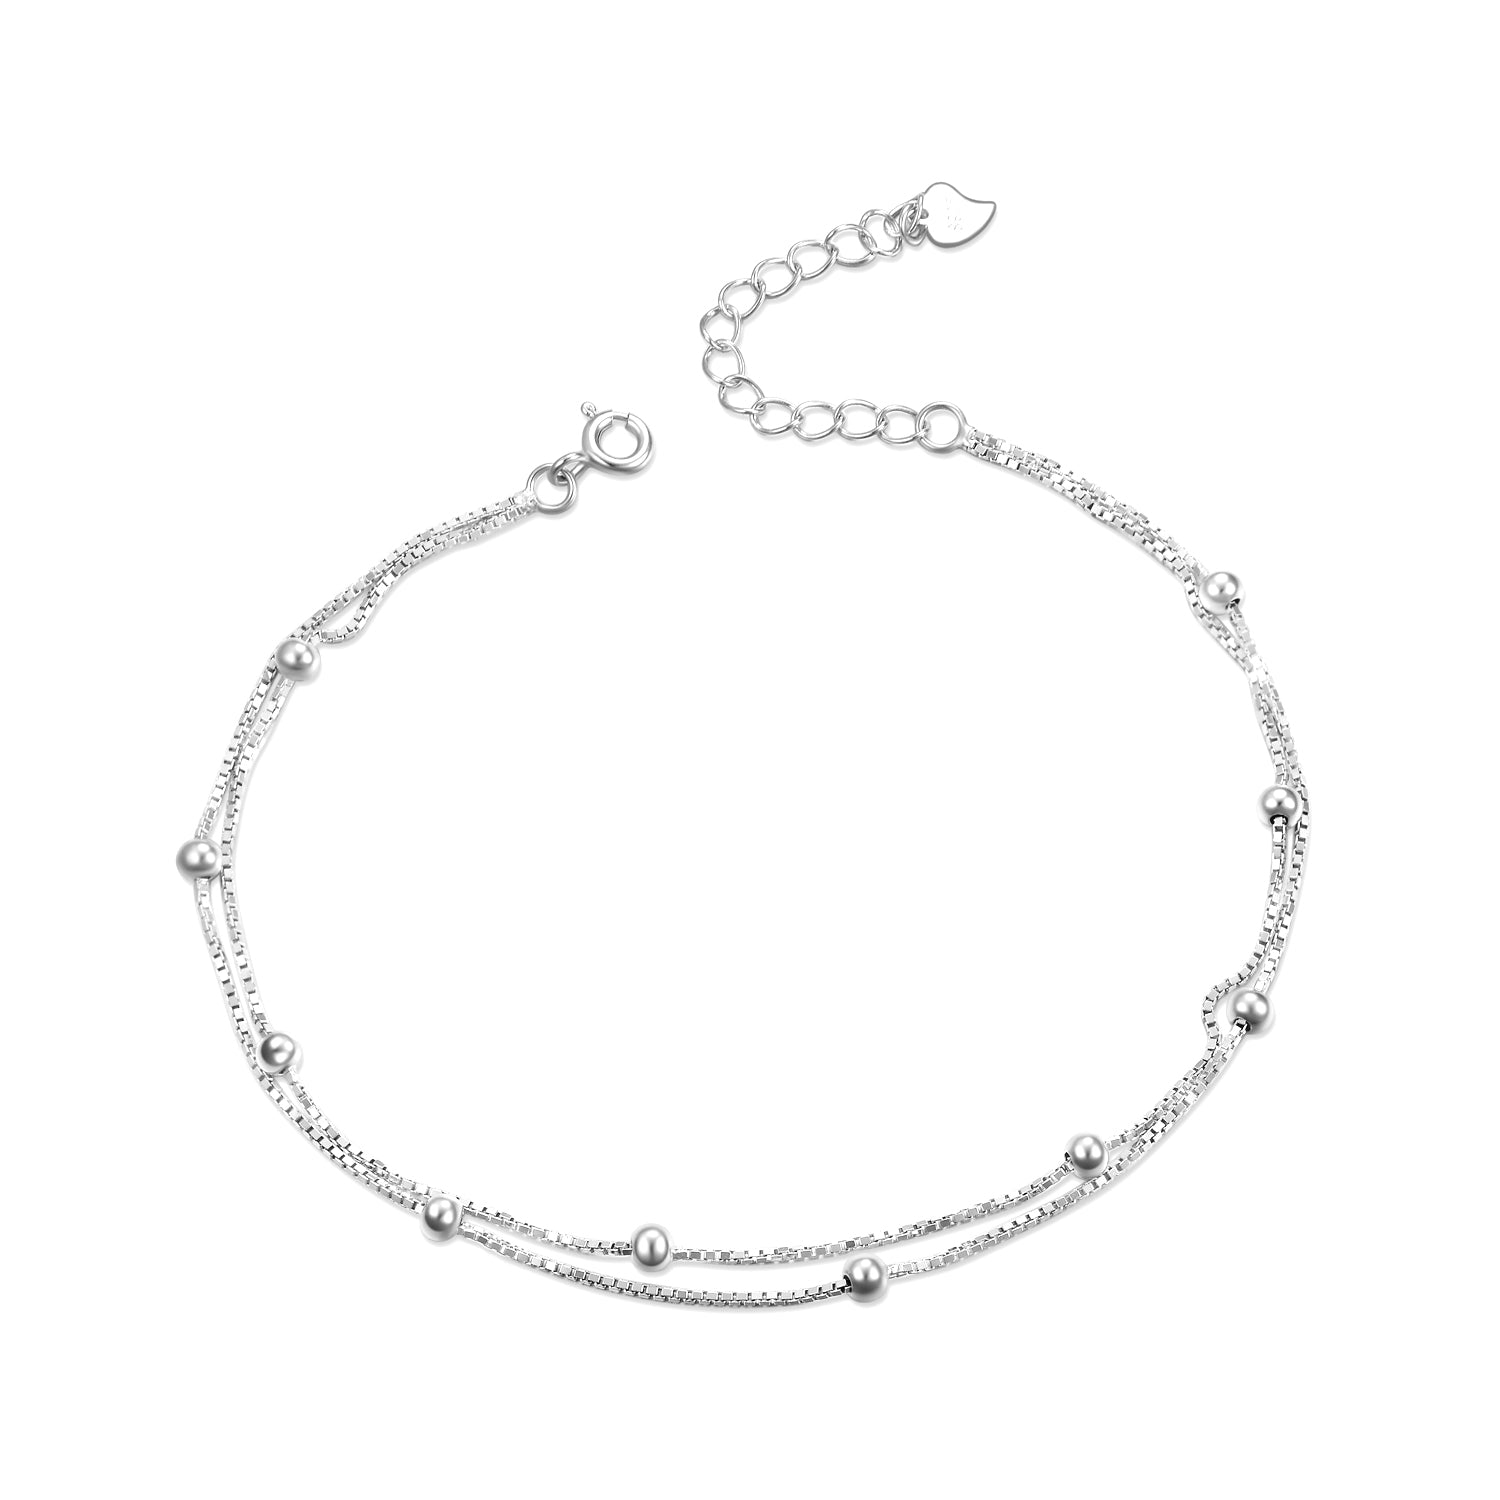 Bead Anklet Summer Jewelry Foot Accessory Silver Anklet Women